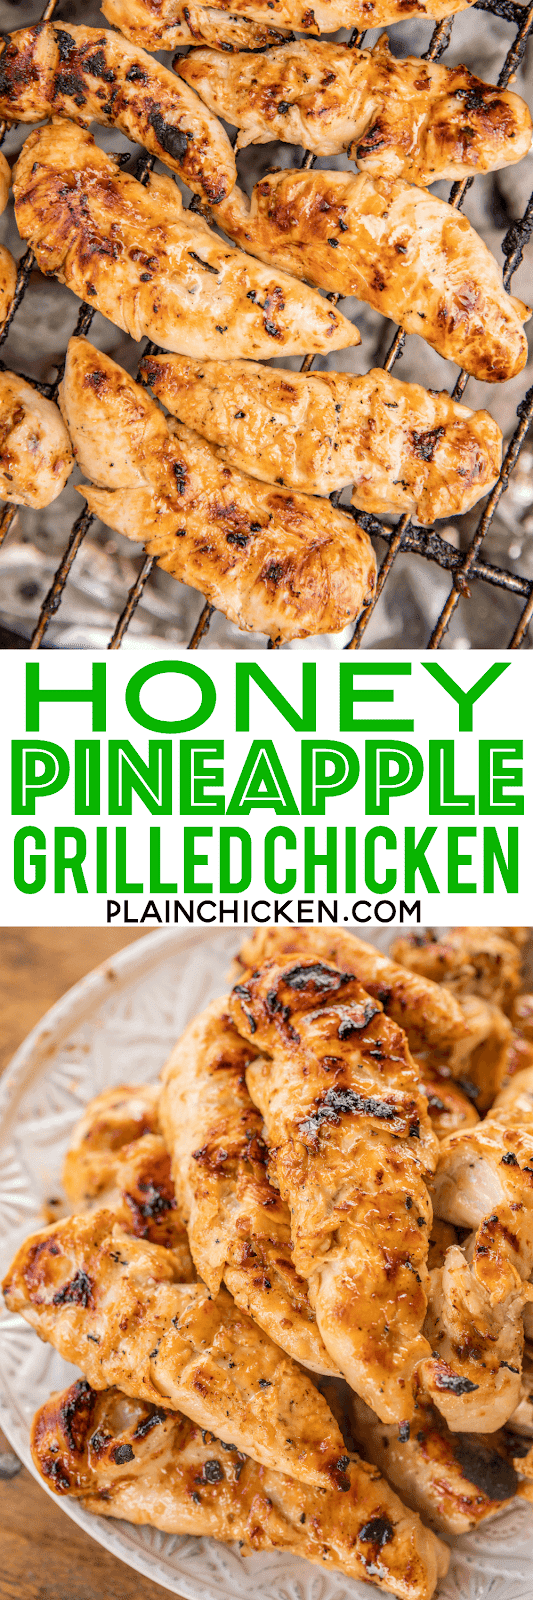 Honey Pineapple Grilled Chicken - crazy delicious!! SO simple and packed full of amazing flavor!! Only 3 ingredients in the marinade - Italian dressing, honey and pineapple juice. Can use chicken tenders, breasts or thighs. We always double the recipe for easy lunches during the week! We actually made it twice last week!! SO good! #chicken #grilling #chickenrecipes #grilled